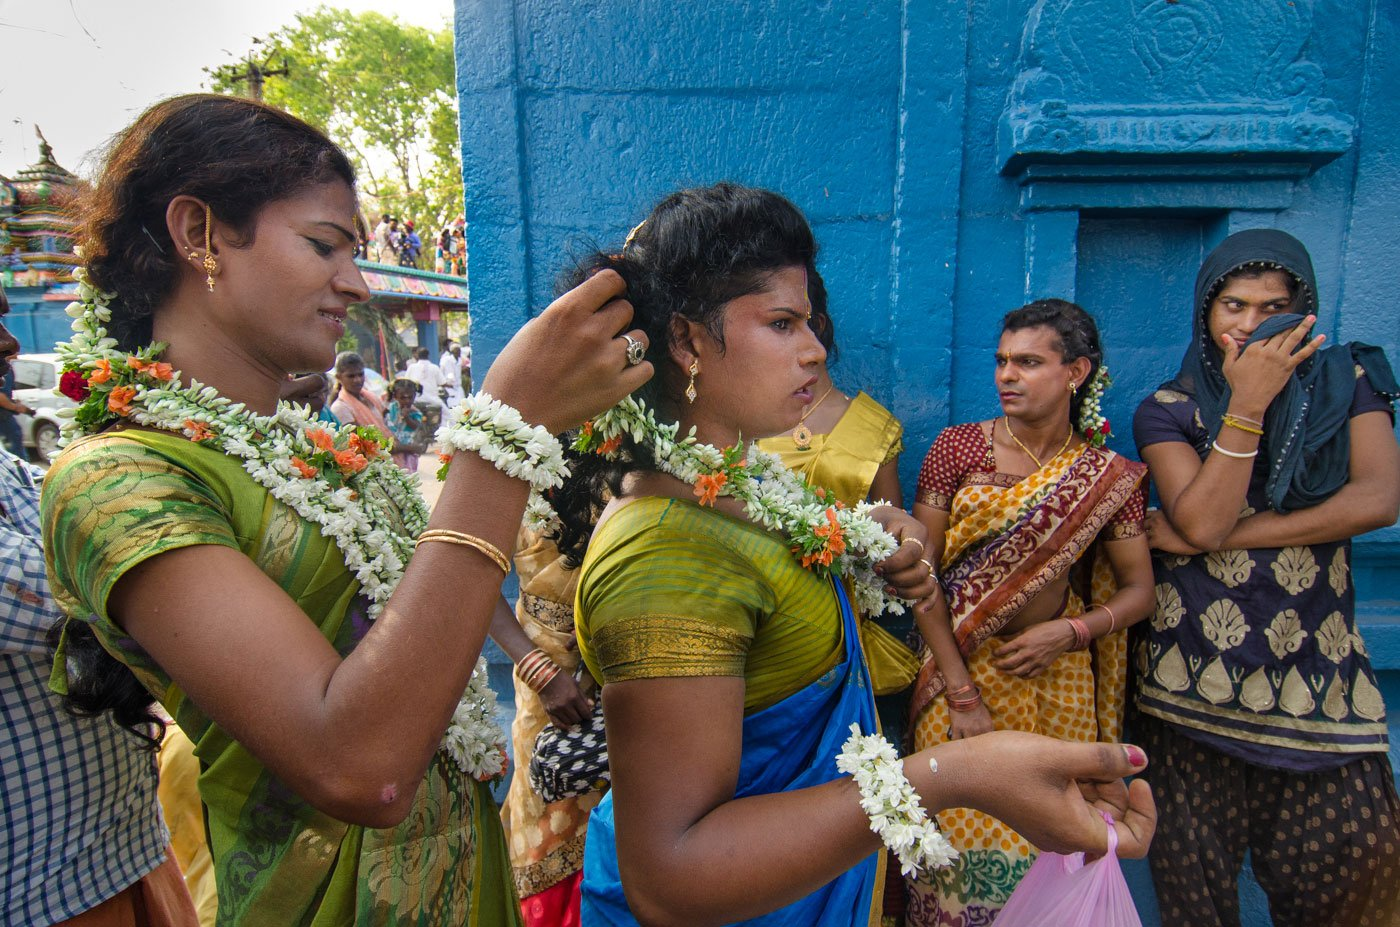 Aravanis enact a story from the Mahabharata in which they get married to Lord Aravan. Here, they are seen getting ready for the wedding. A transgender woman decorating another transgender's hair with flowers